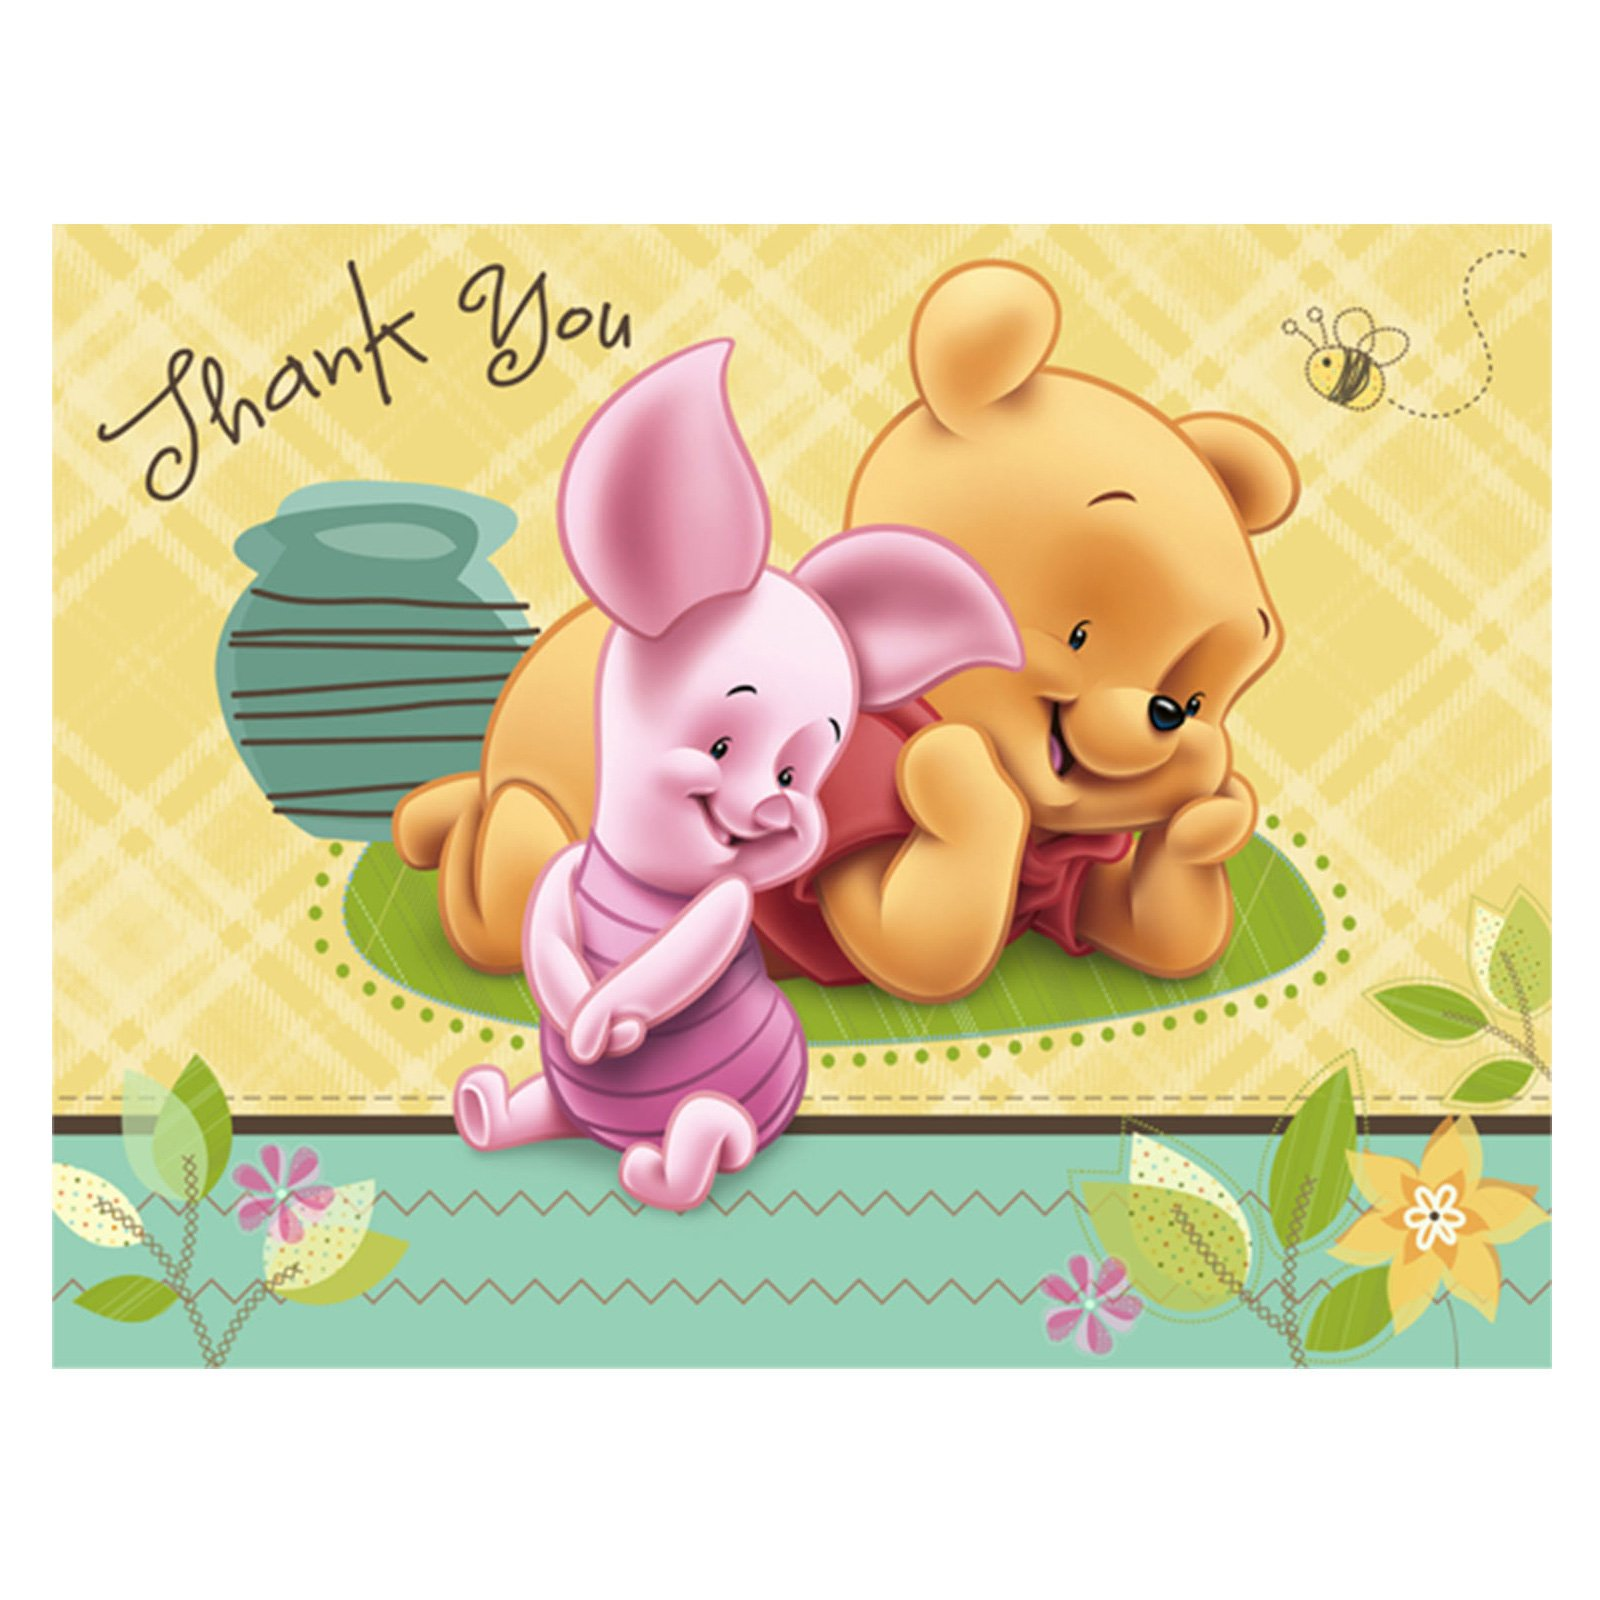 Winnie the pooh thank you clipart quotes black and white library Baby Winnie The Pooh Thank You (#2088627) - HD Wallpaper ... black and white library